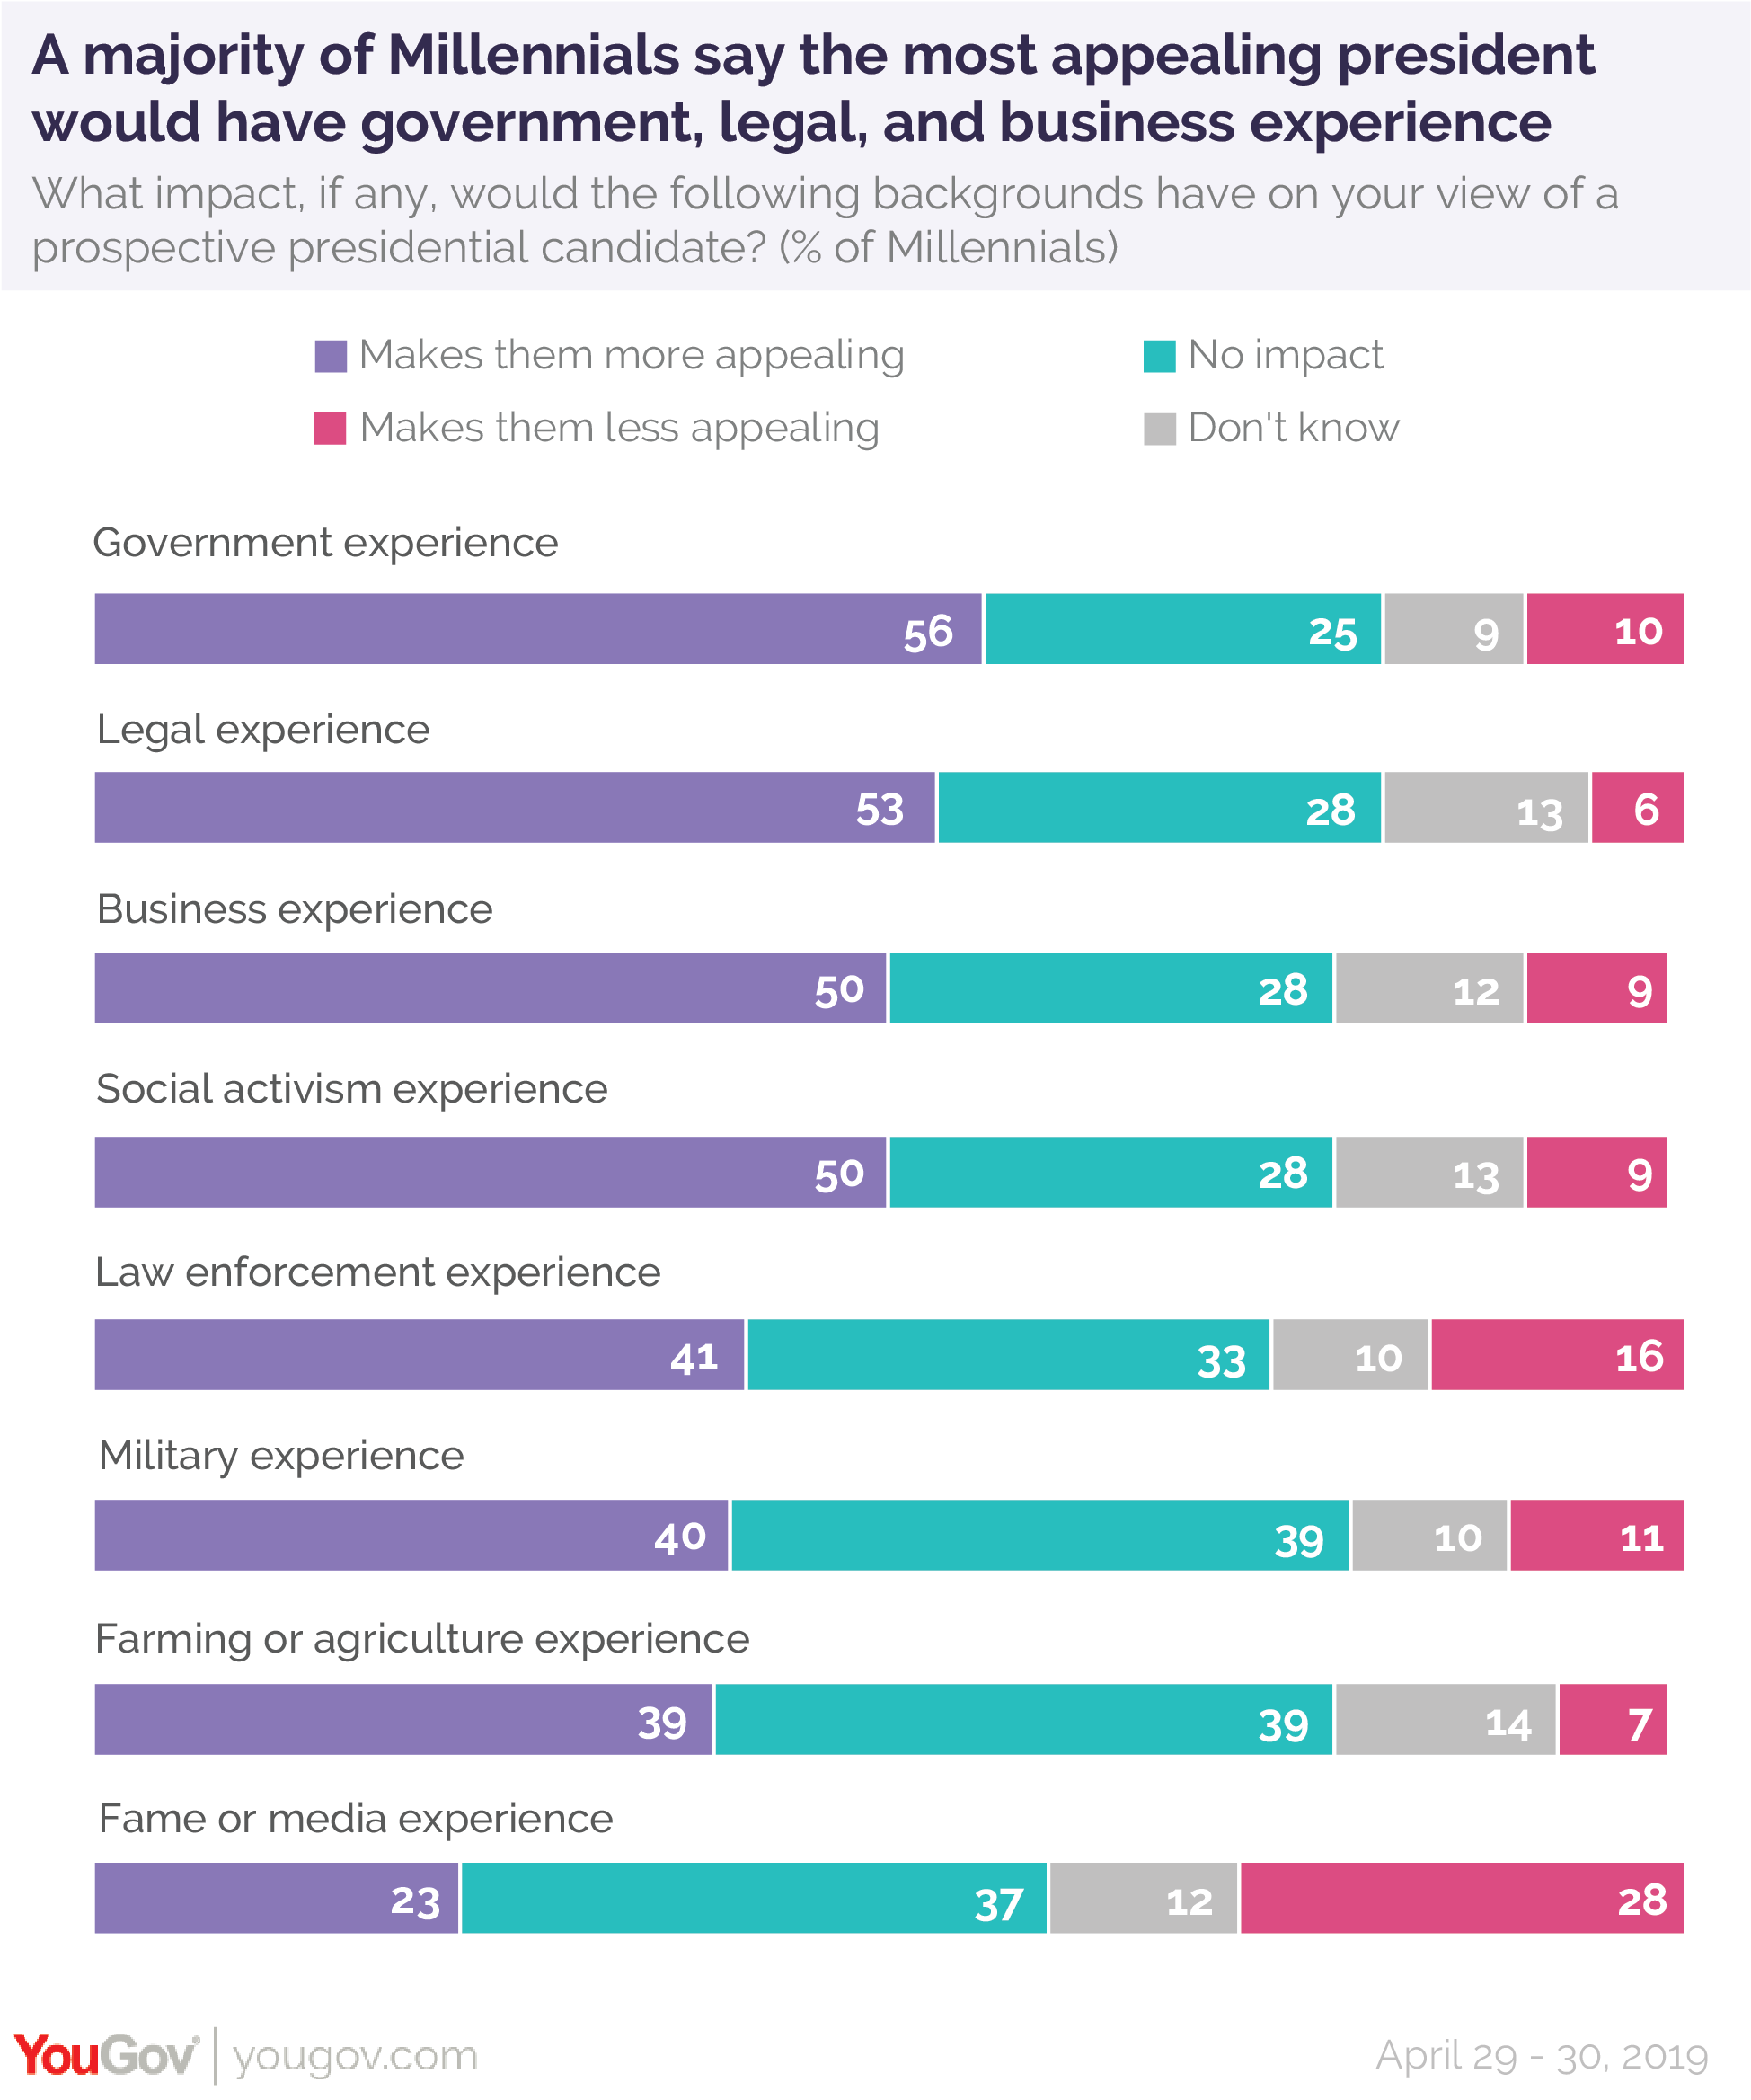 A majority of Millennials say the most appealing president would have government, legal, and business experience